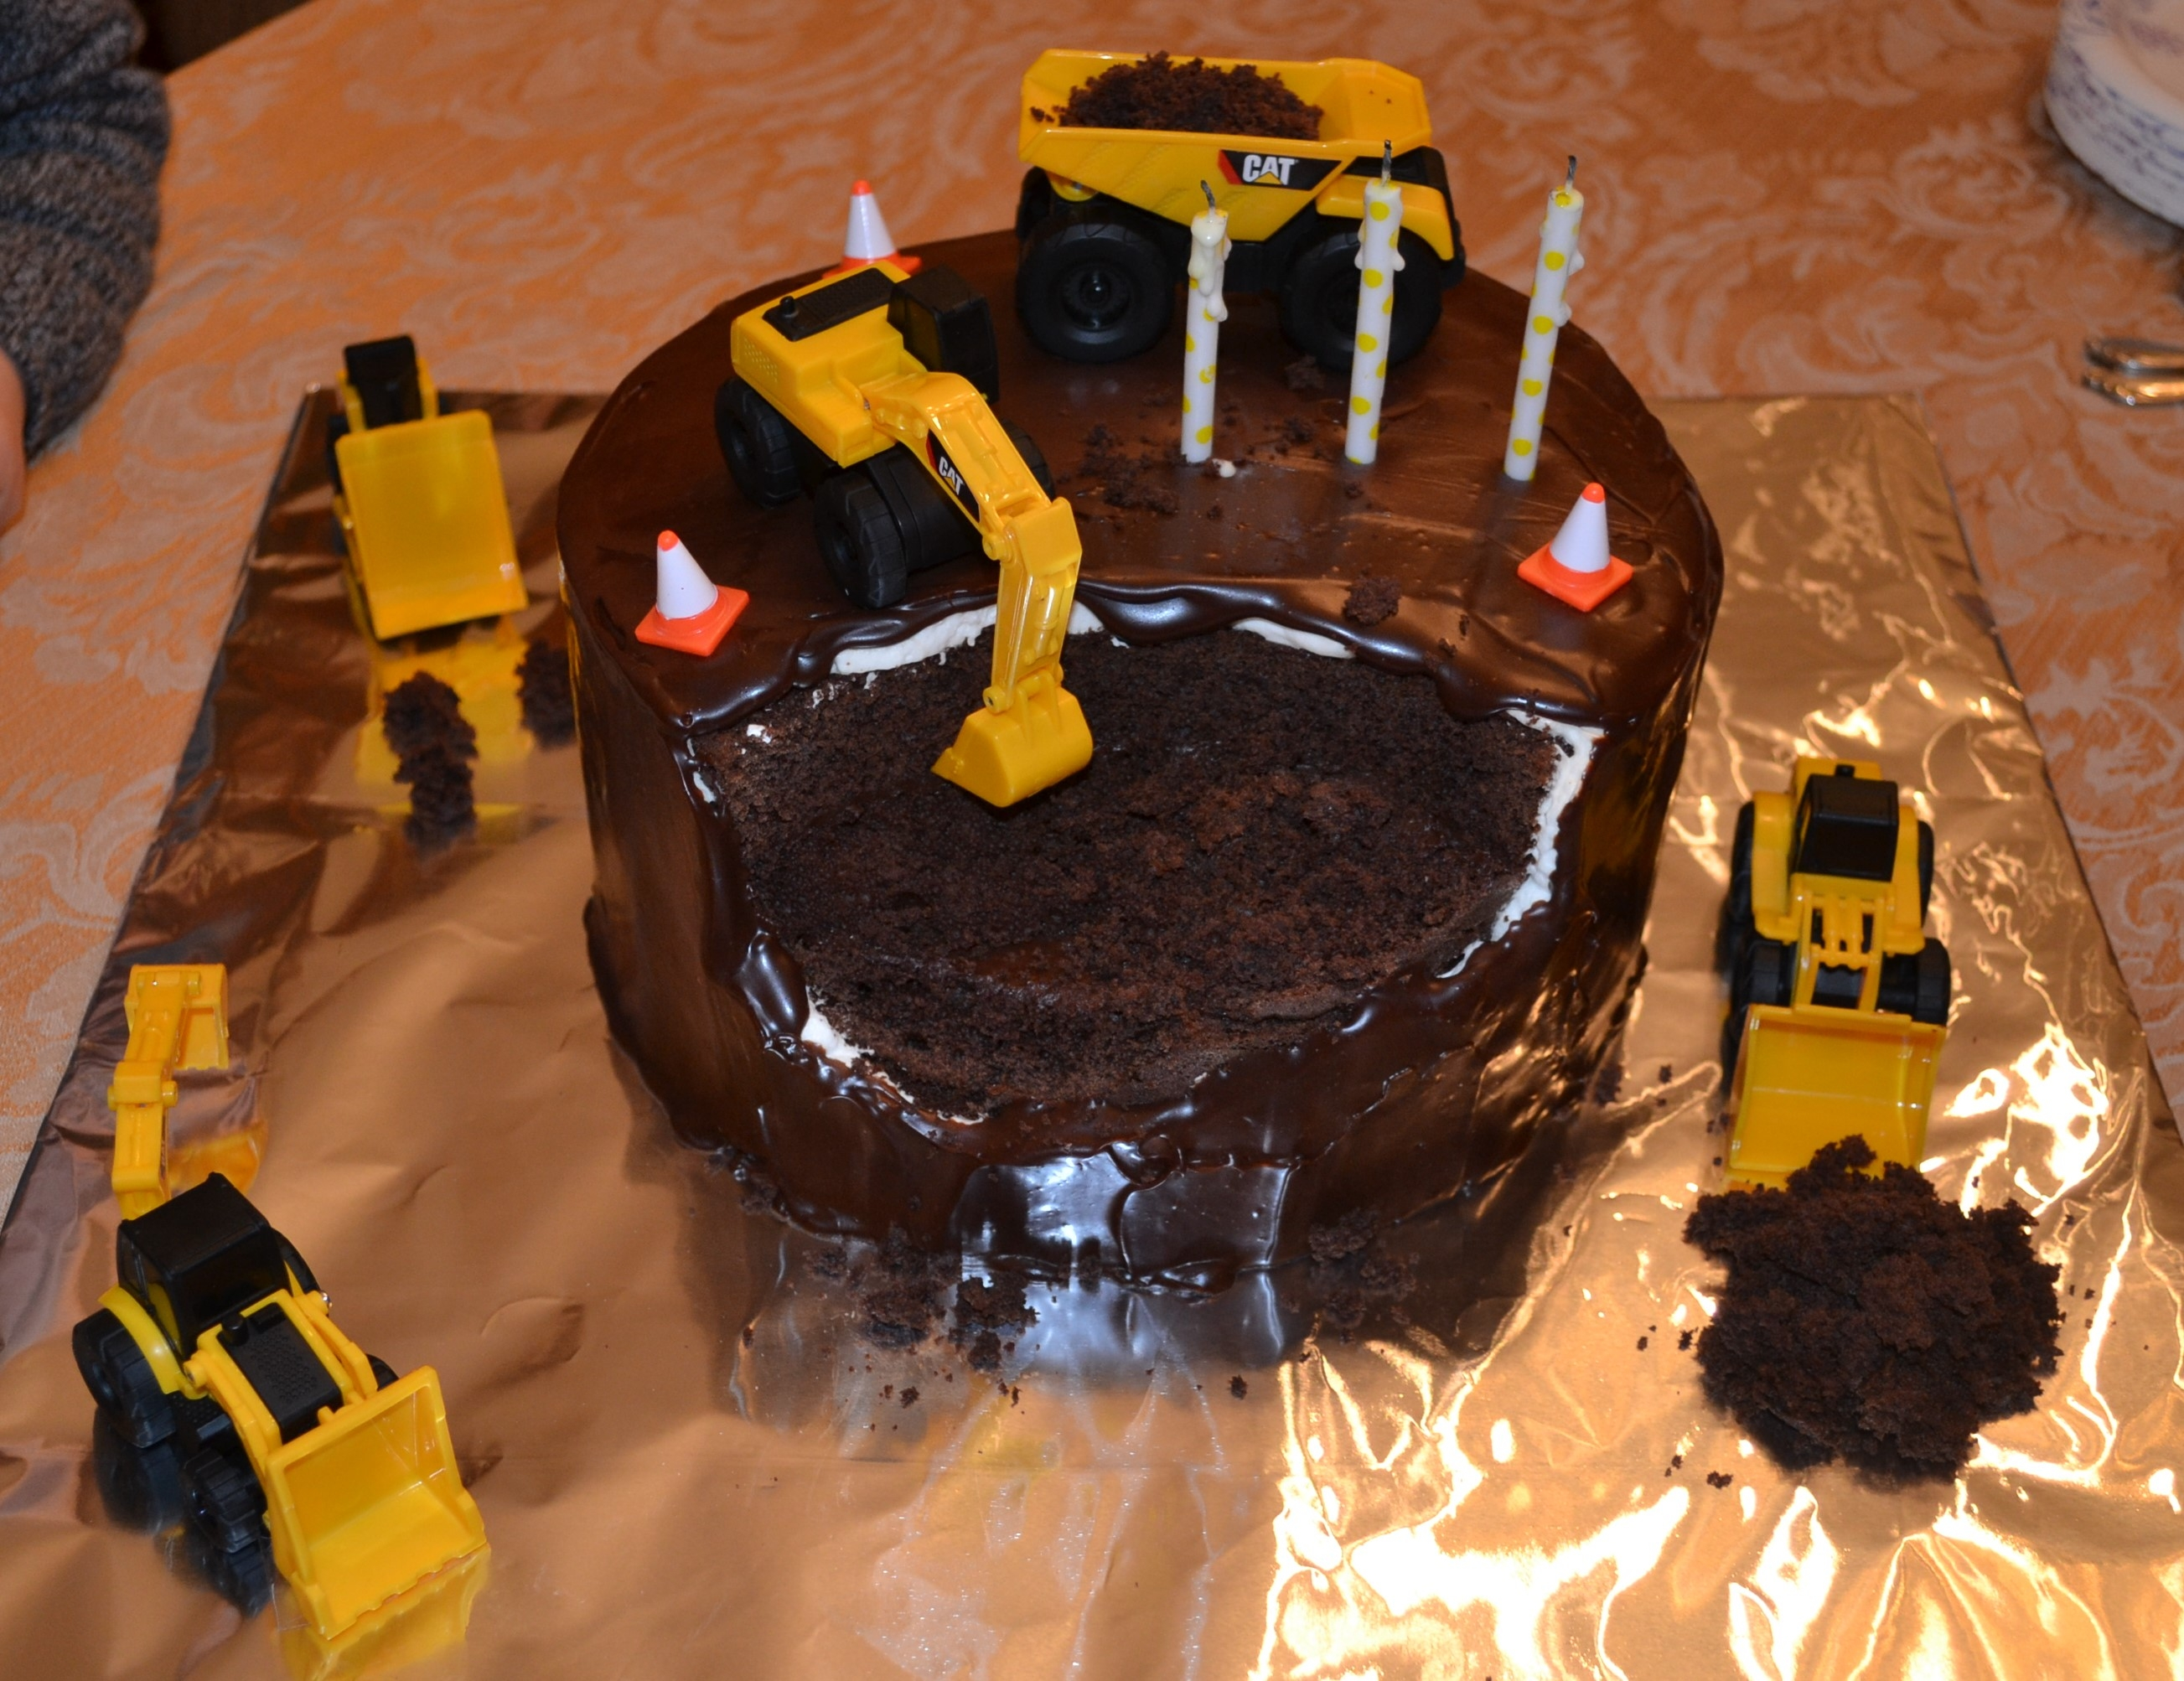 Construction Machinery Birthday Cake I made this cake for my son's 3rd birthday. Chocolate cake torted with chocolate ganashe, covered in whipped cream then covered again...